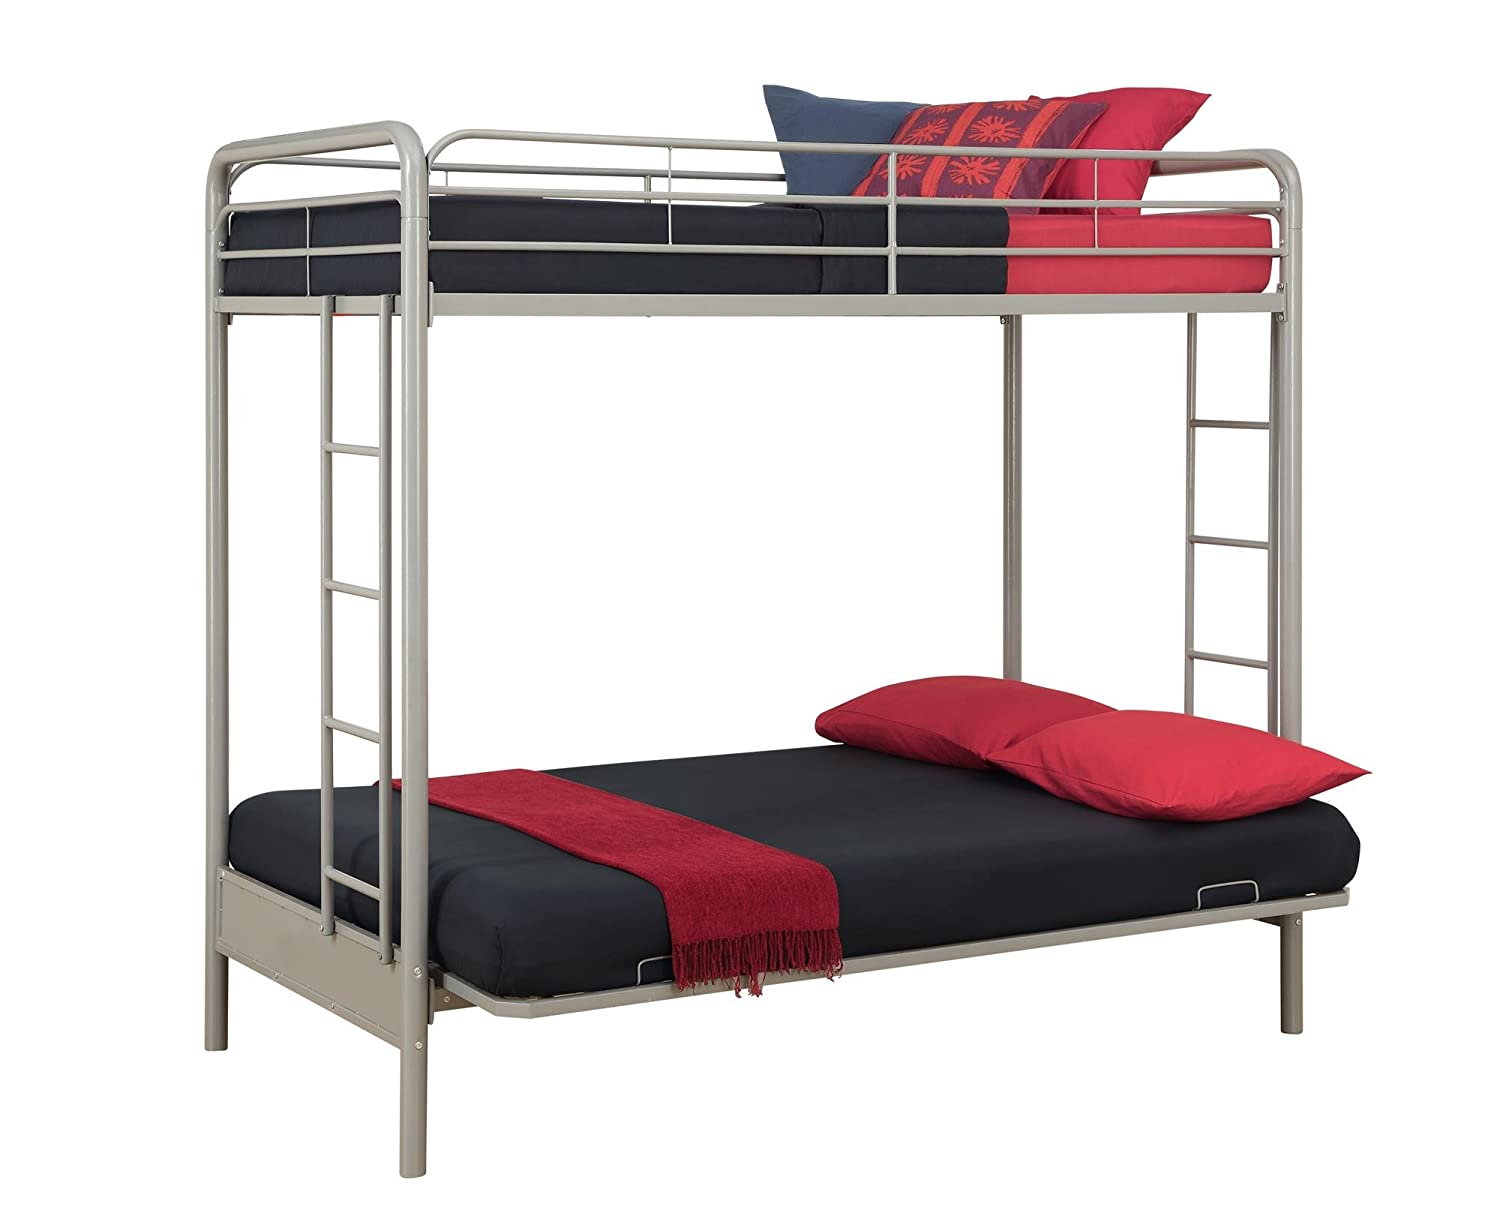 amazon    dorel home products twin over full futon bunk bed silver   color  silver  kitchen  u0026 dining amazon    dorel home products twin over full futon bunk bed      rh   amazon